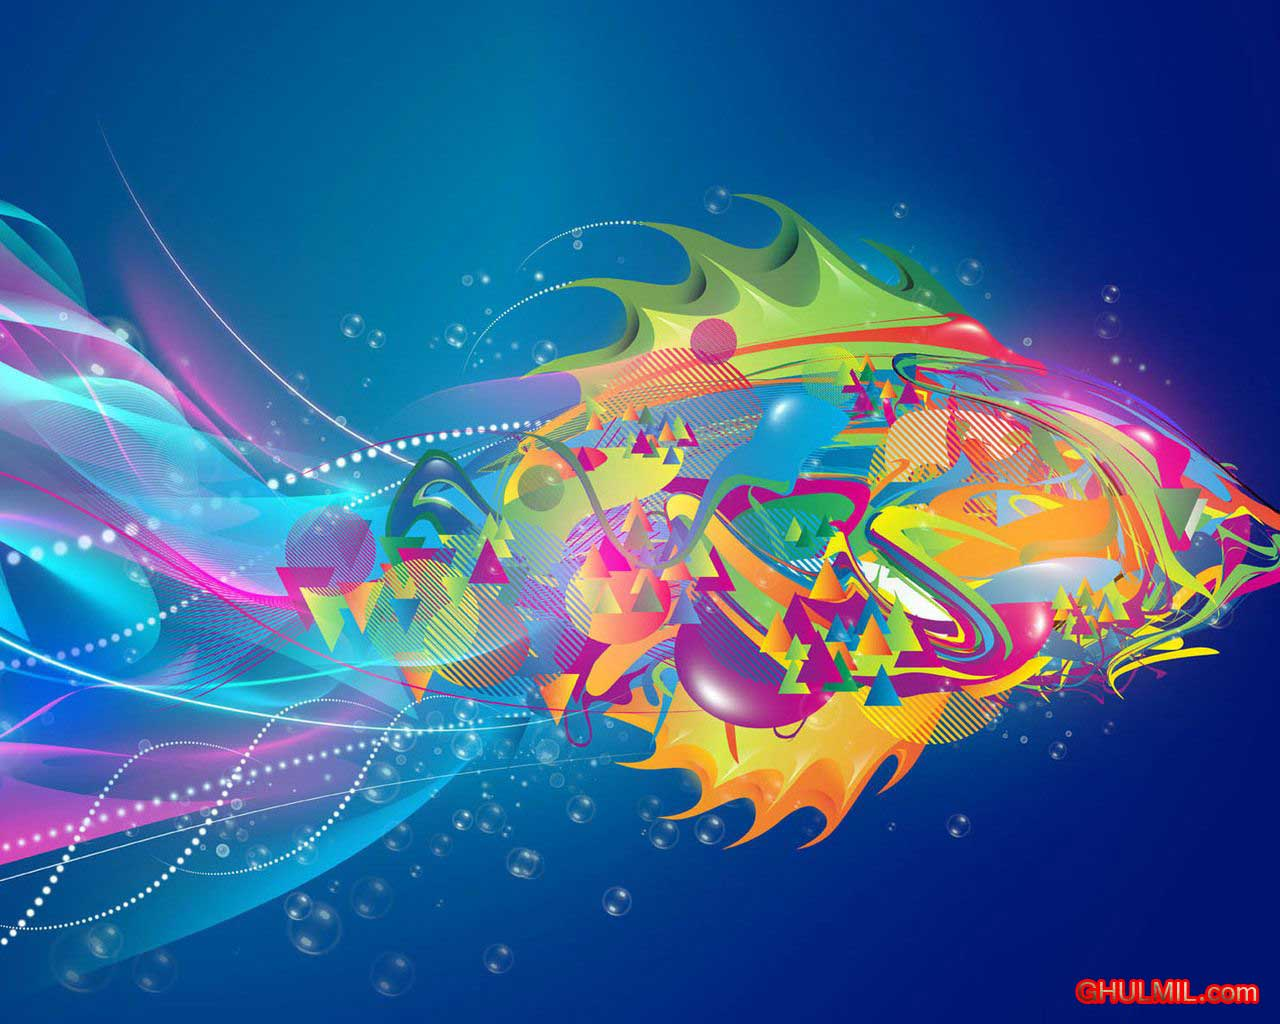 http://2.bp.blogspot.com/-82V0szg_Jp4/UHb5T4LWB9I/AAAAAAAAAFE/FKjikCXj94c/s1600/free-download-colorful-fish-wallpaper.jpg